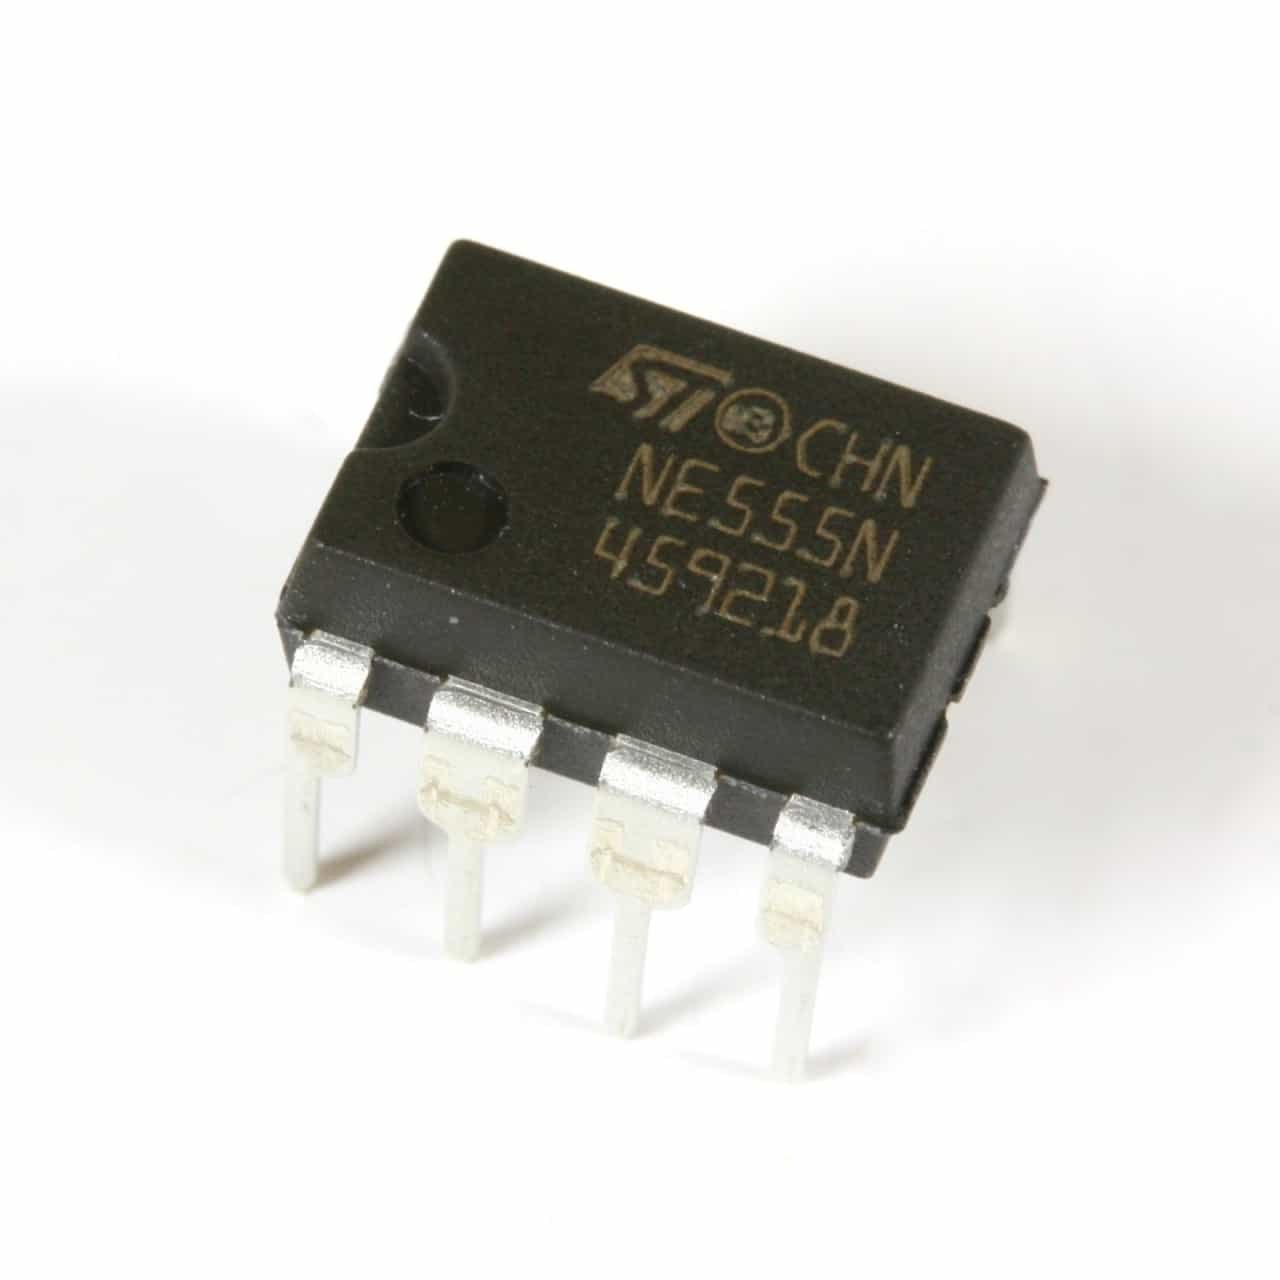 555 Timer Ic Ne555 Ne555p Dip 8 Based 10 Pieces Abhith How To Build A Motorcycle Alarm India Industrial Scientific